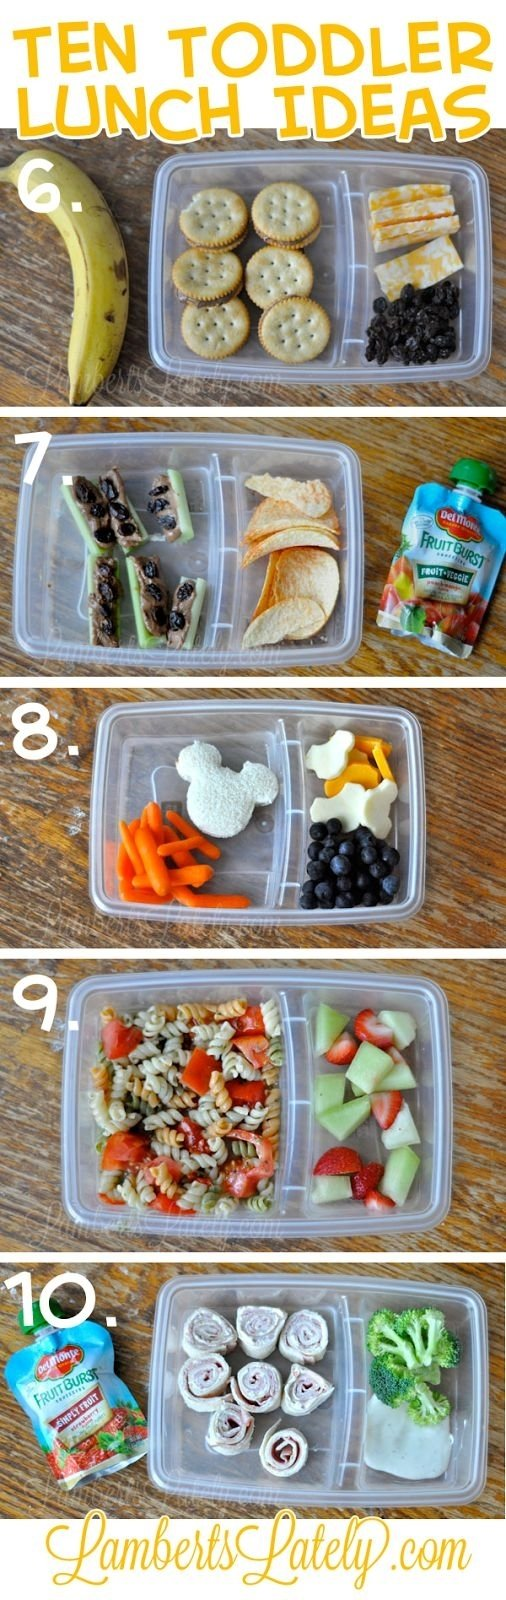 10 Most Popular Lunch Ideas For Kids For School the best school lunch ideas for kids that are fun and easy 8 2021